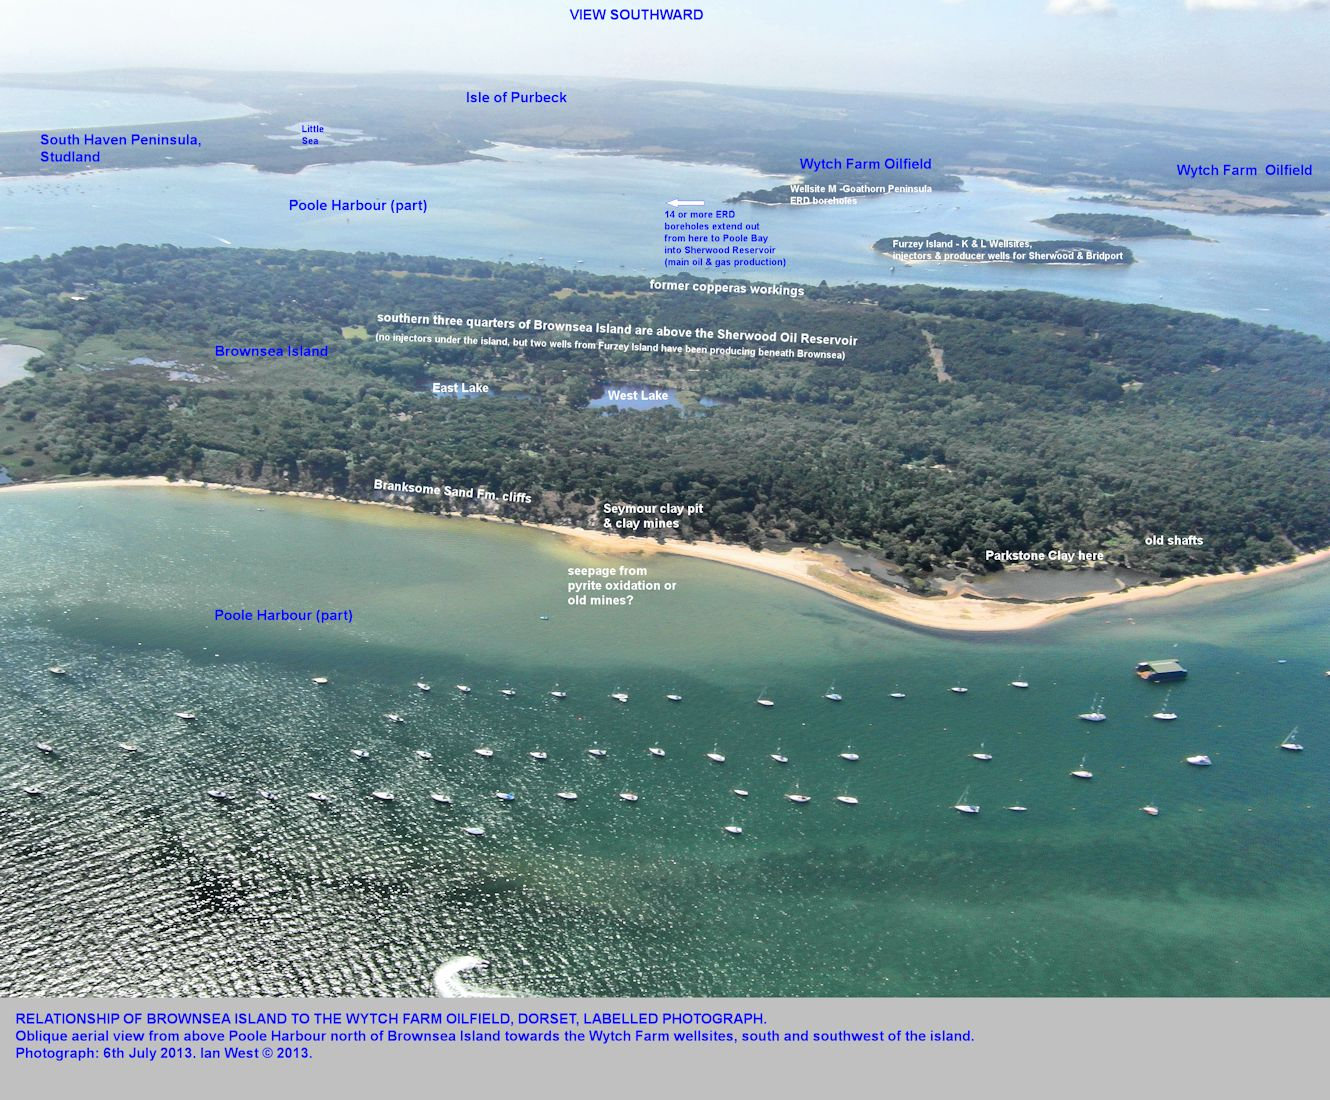 Relationship of the the Wytch Farm oilfield to Brownsea Island and part of Poole Harbour, oblique aerial view towards the south, 6th July 2013